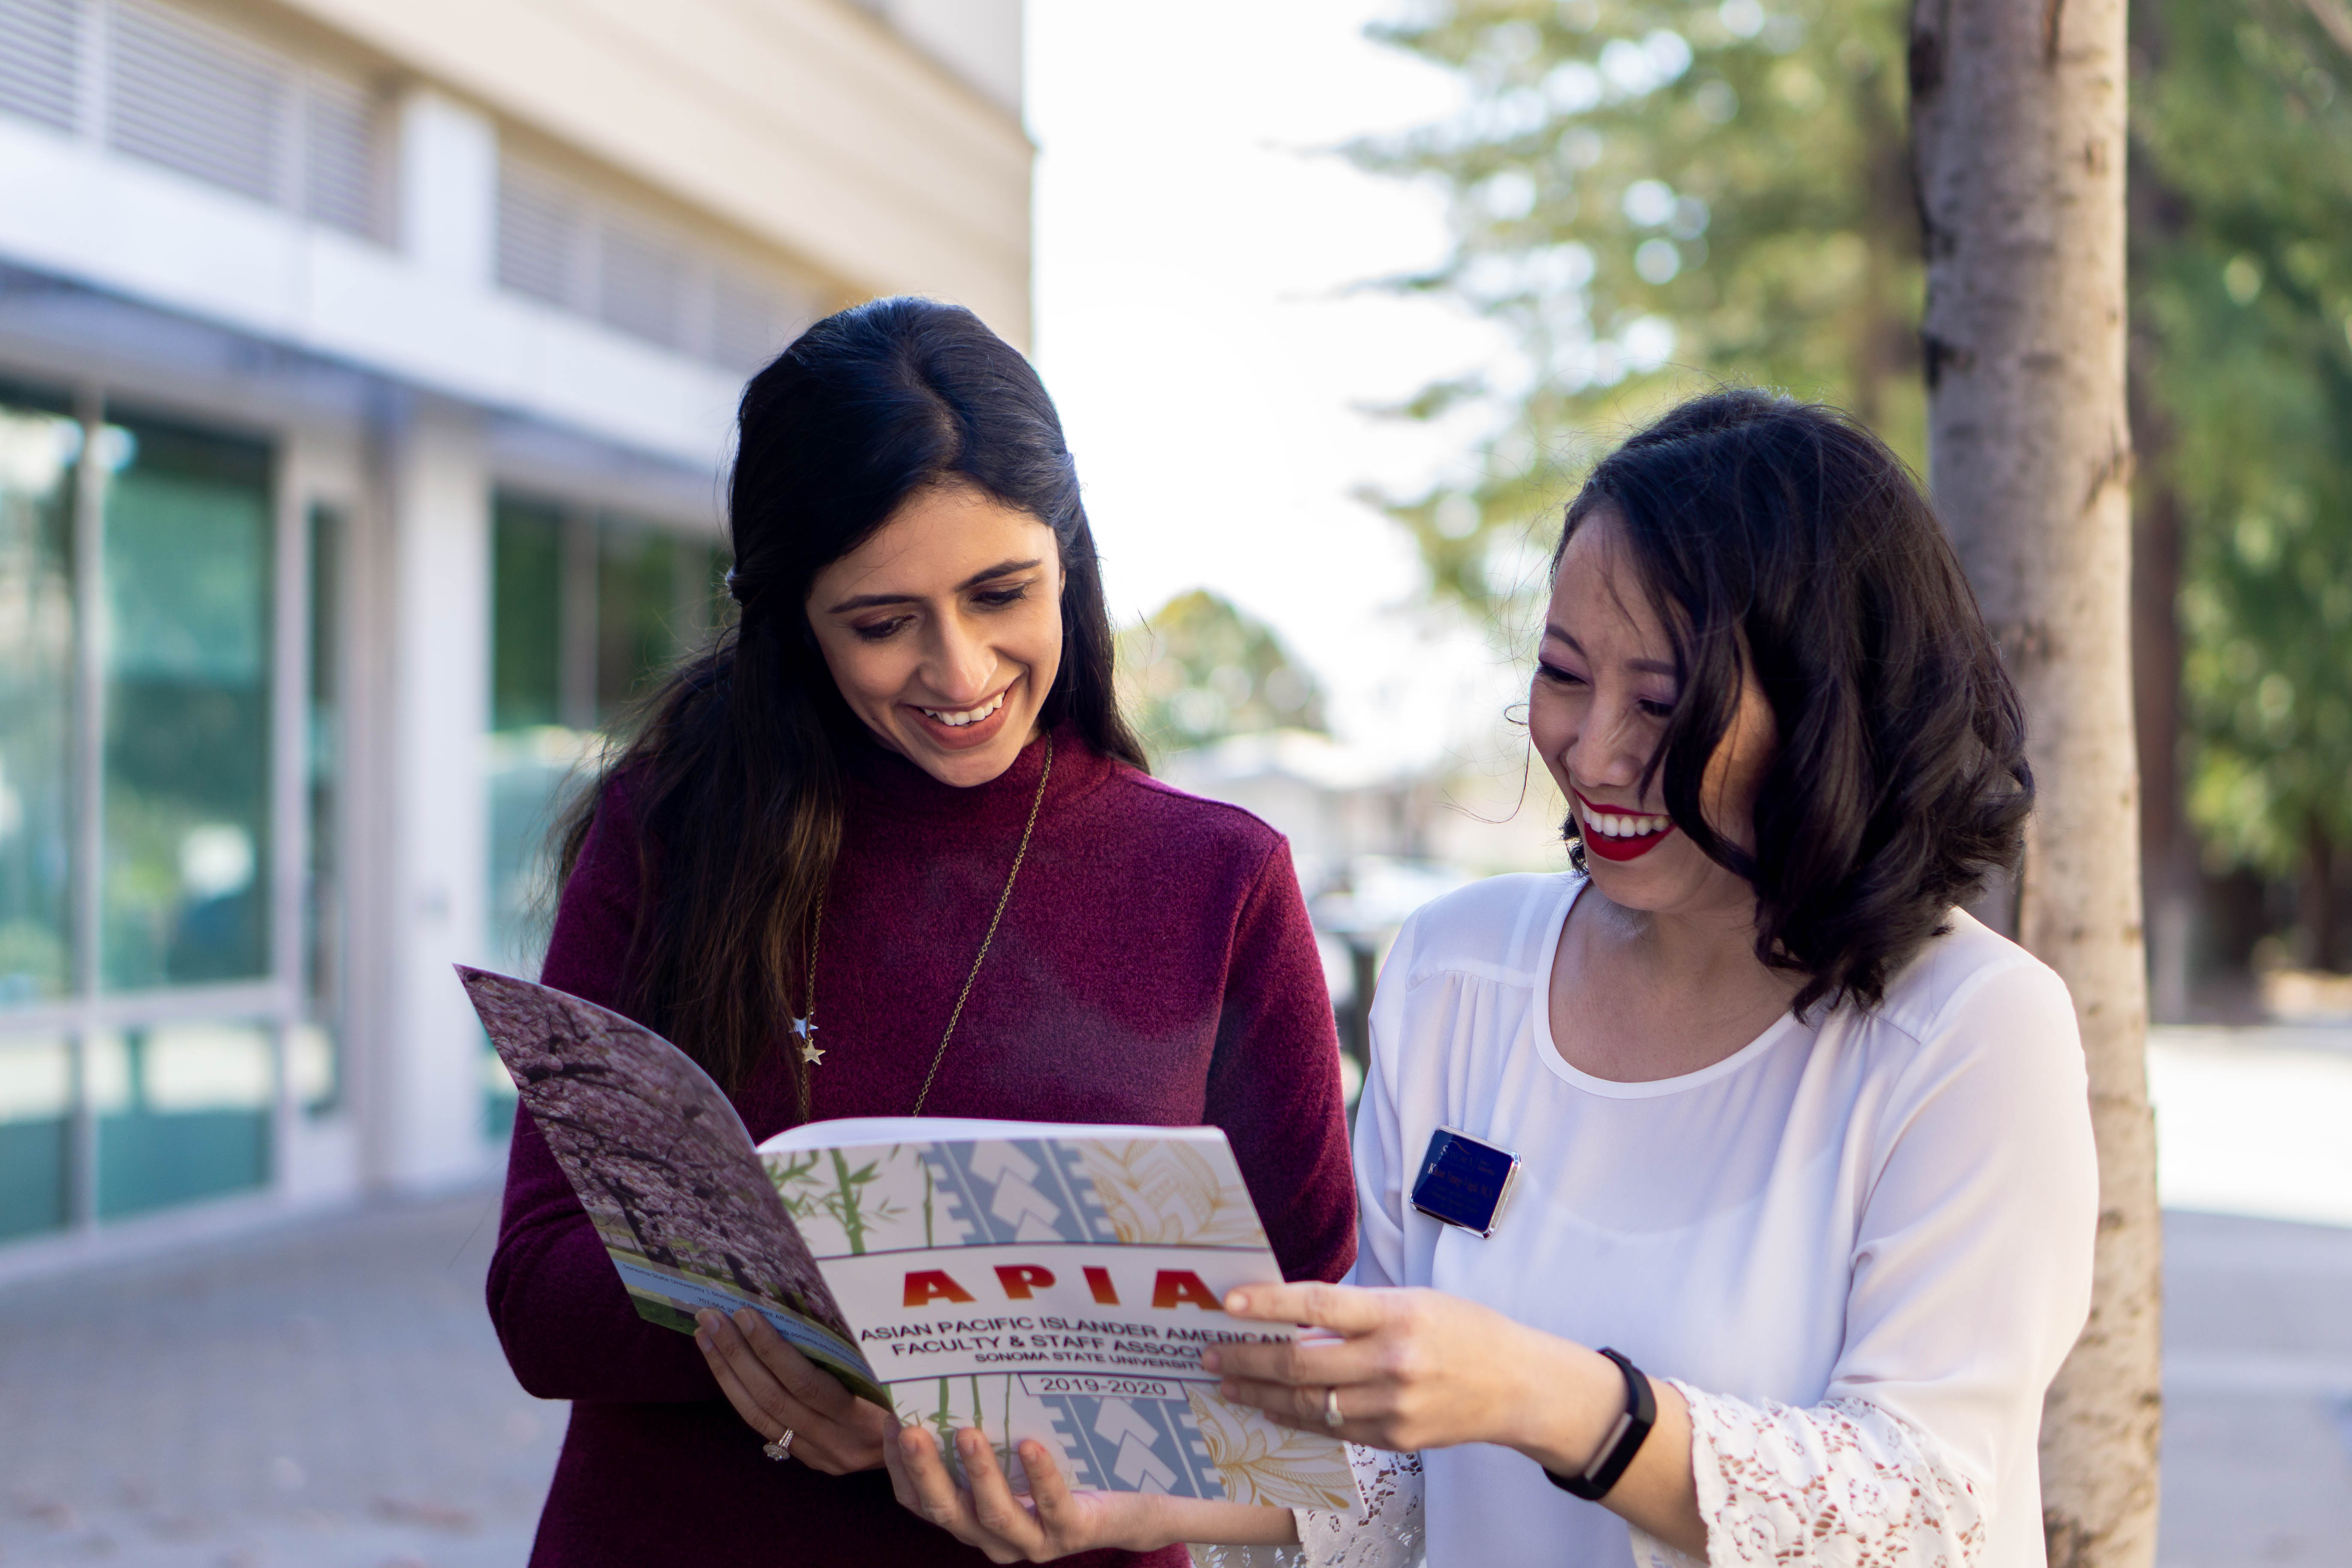 Two people sharing a magazine